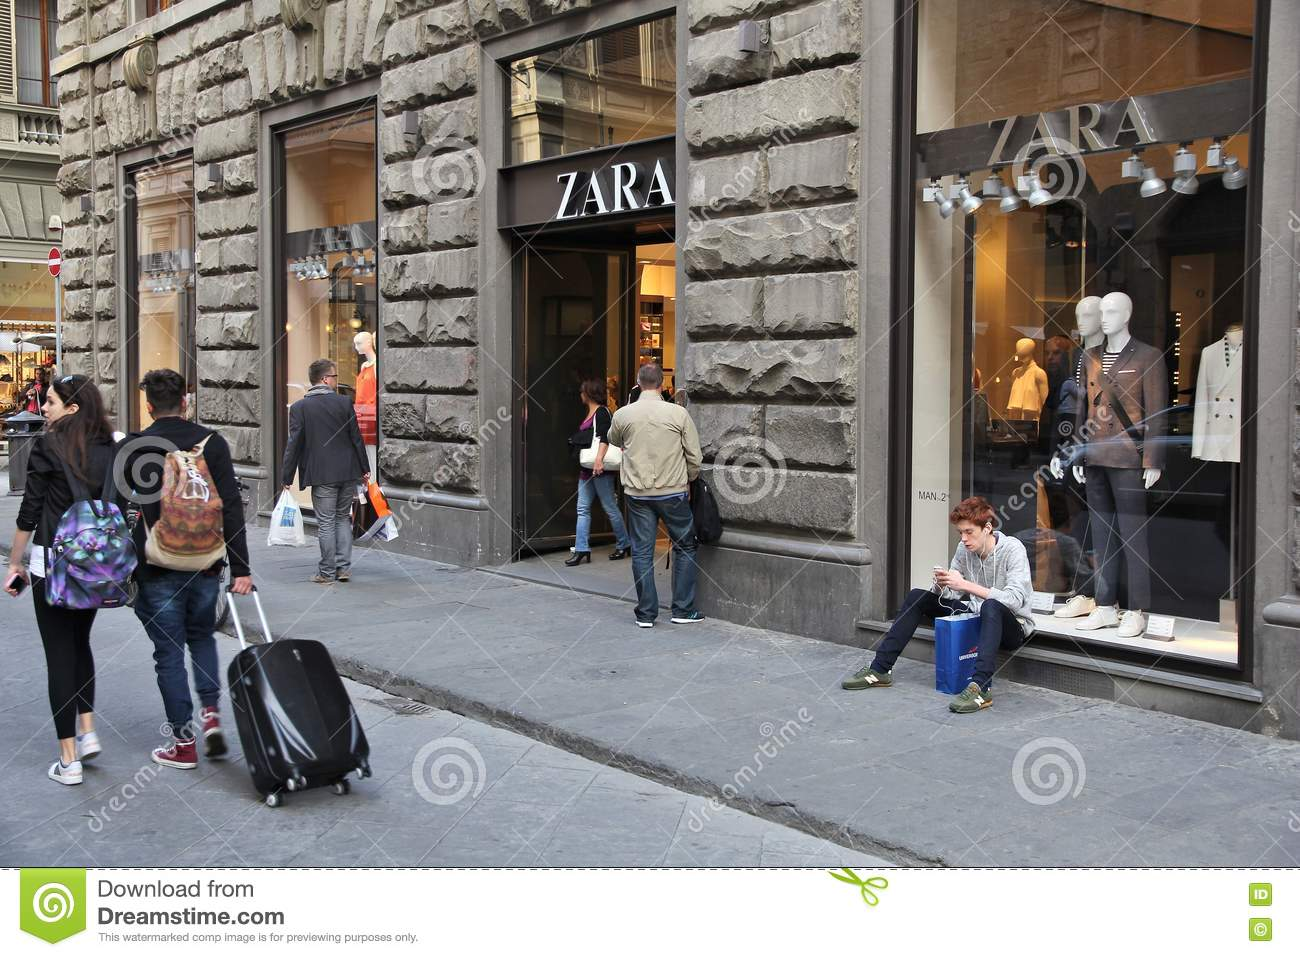 Zara shop on the street passeig de gracia in barcelona for Dream store firenze